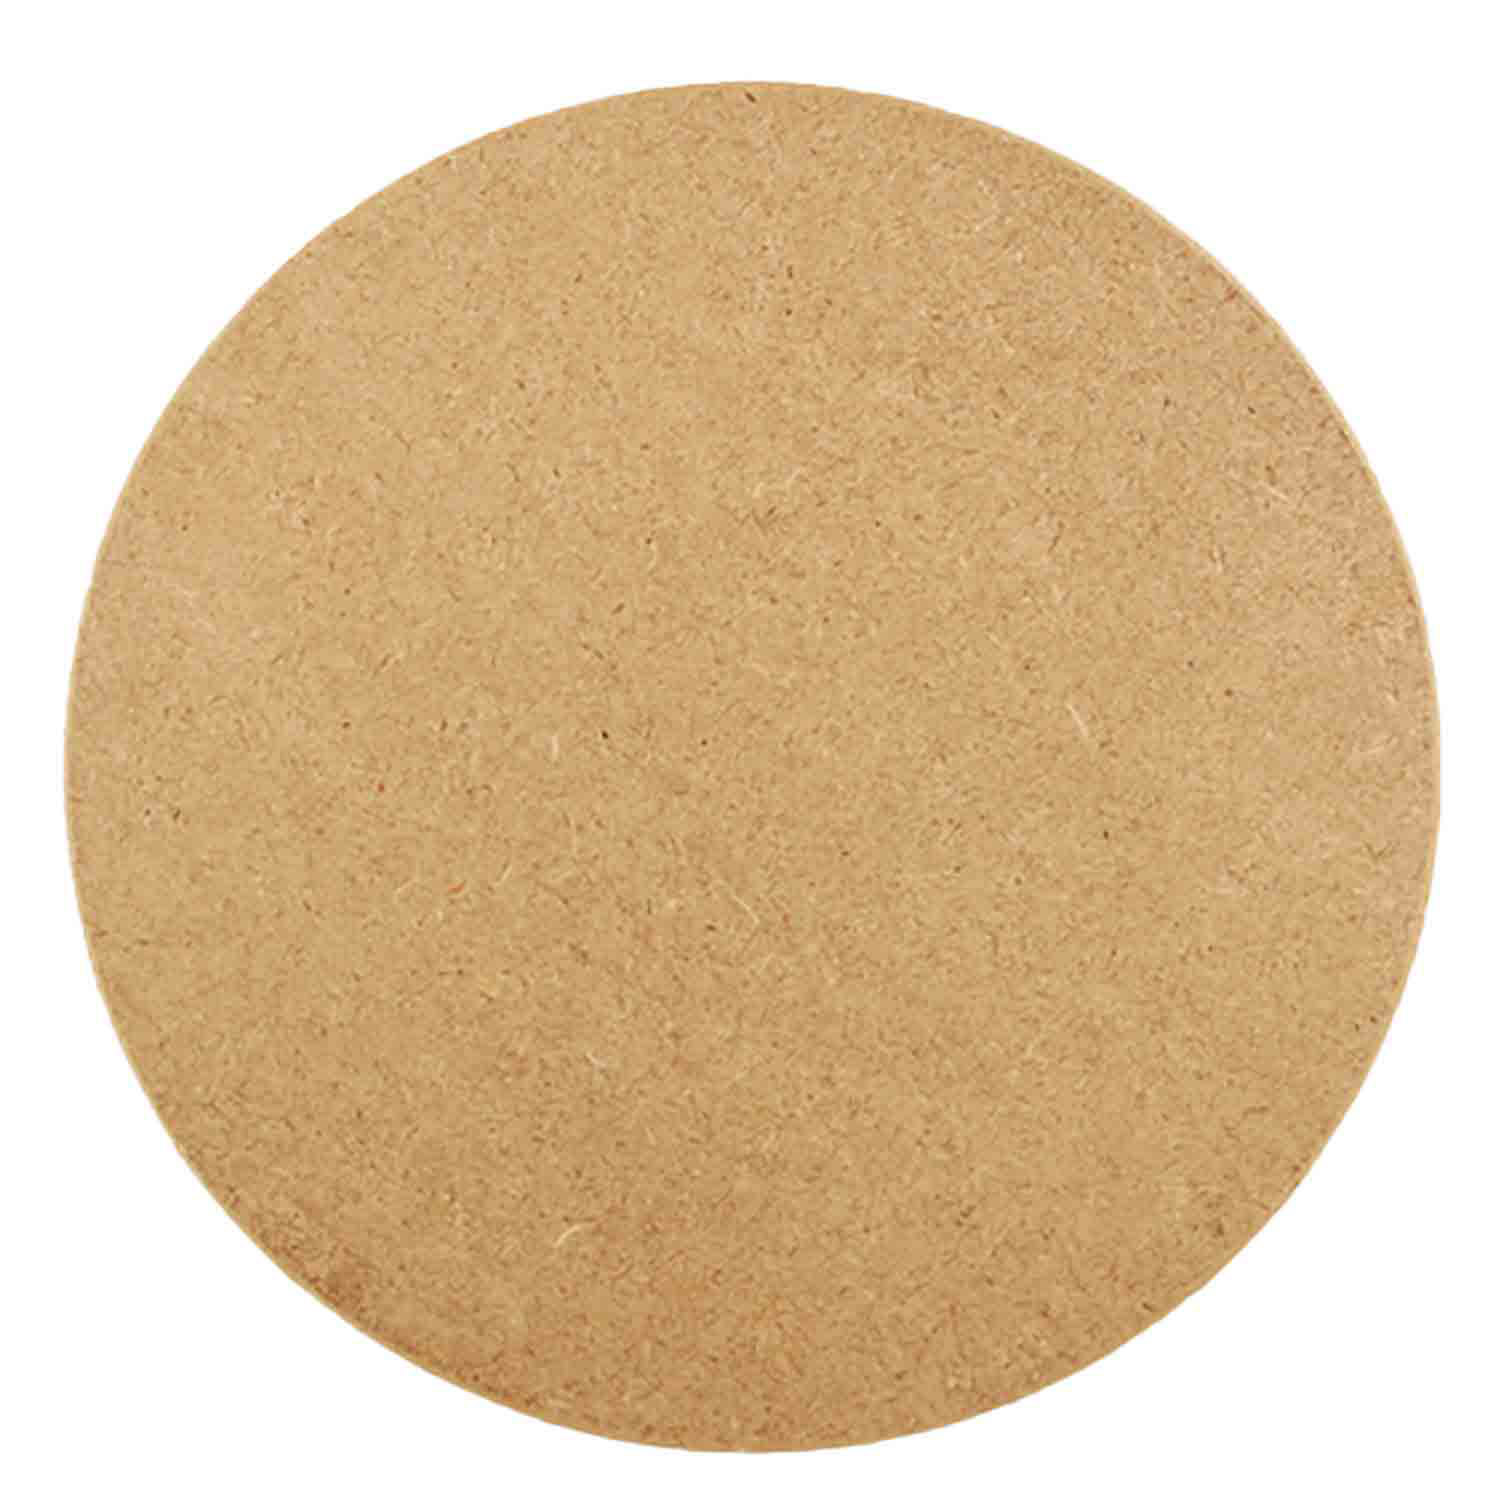 "20"" Round Masonite Cake Board"